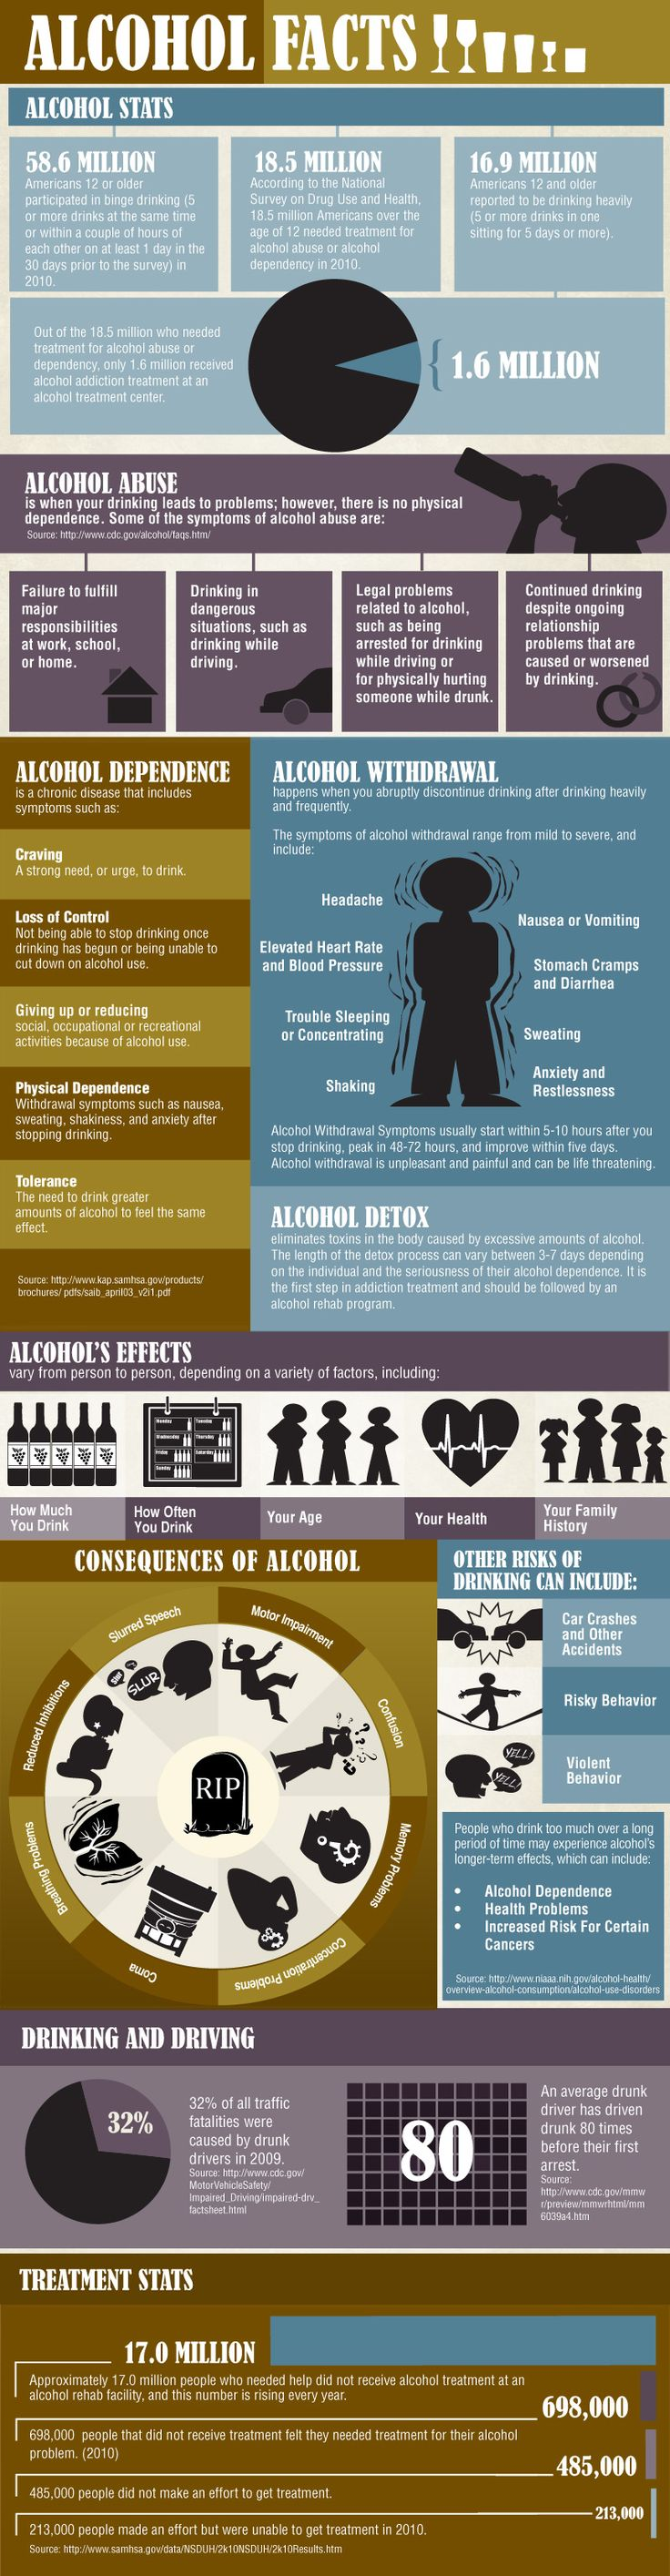 Learn the signs of alcohol abuse, addiction, withdrawal symptoms and how alcohol can negatively affect your life.